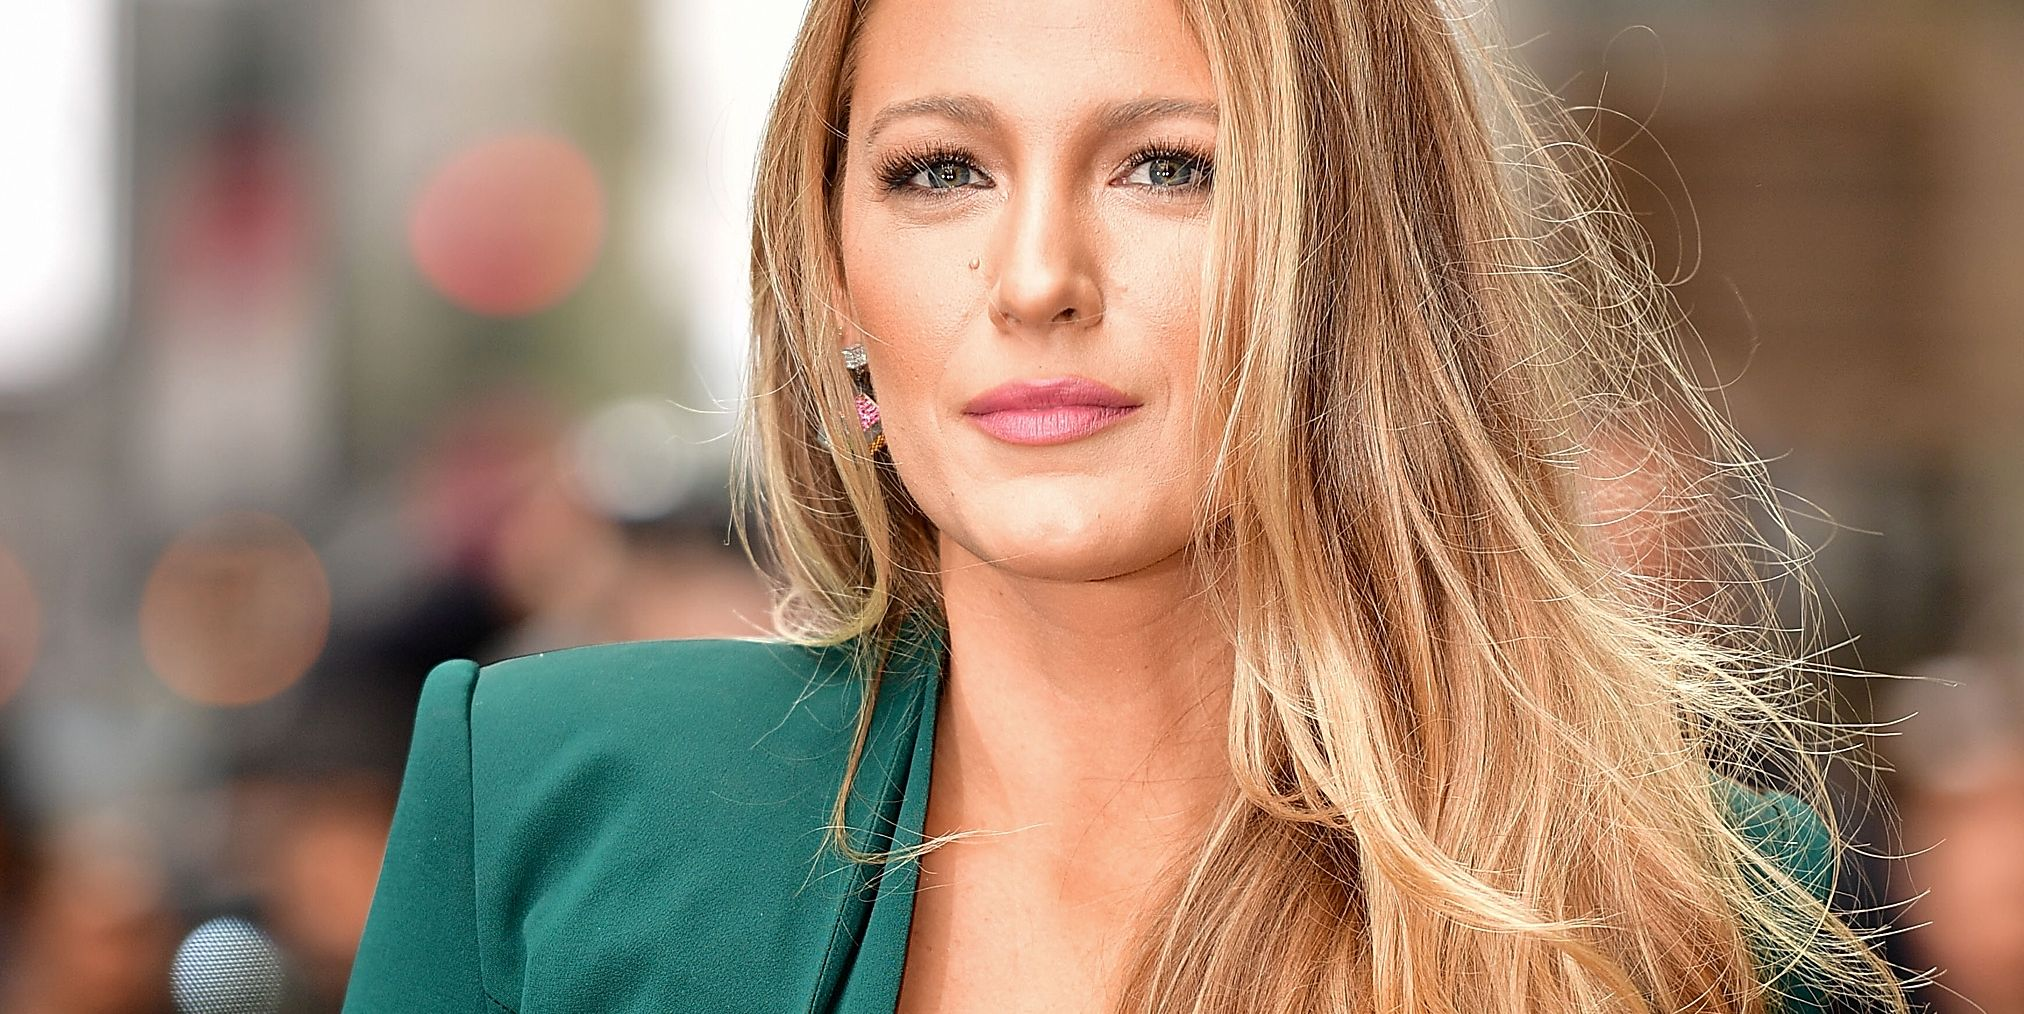 Blake Lively Opened Up About Being Harassed By a Makeup Artist